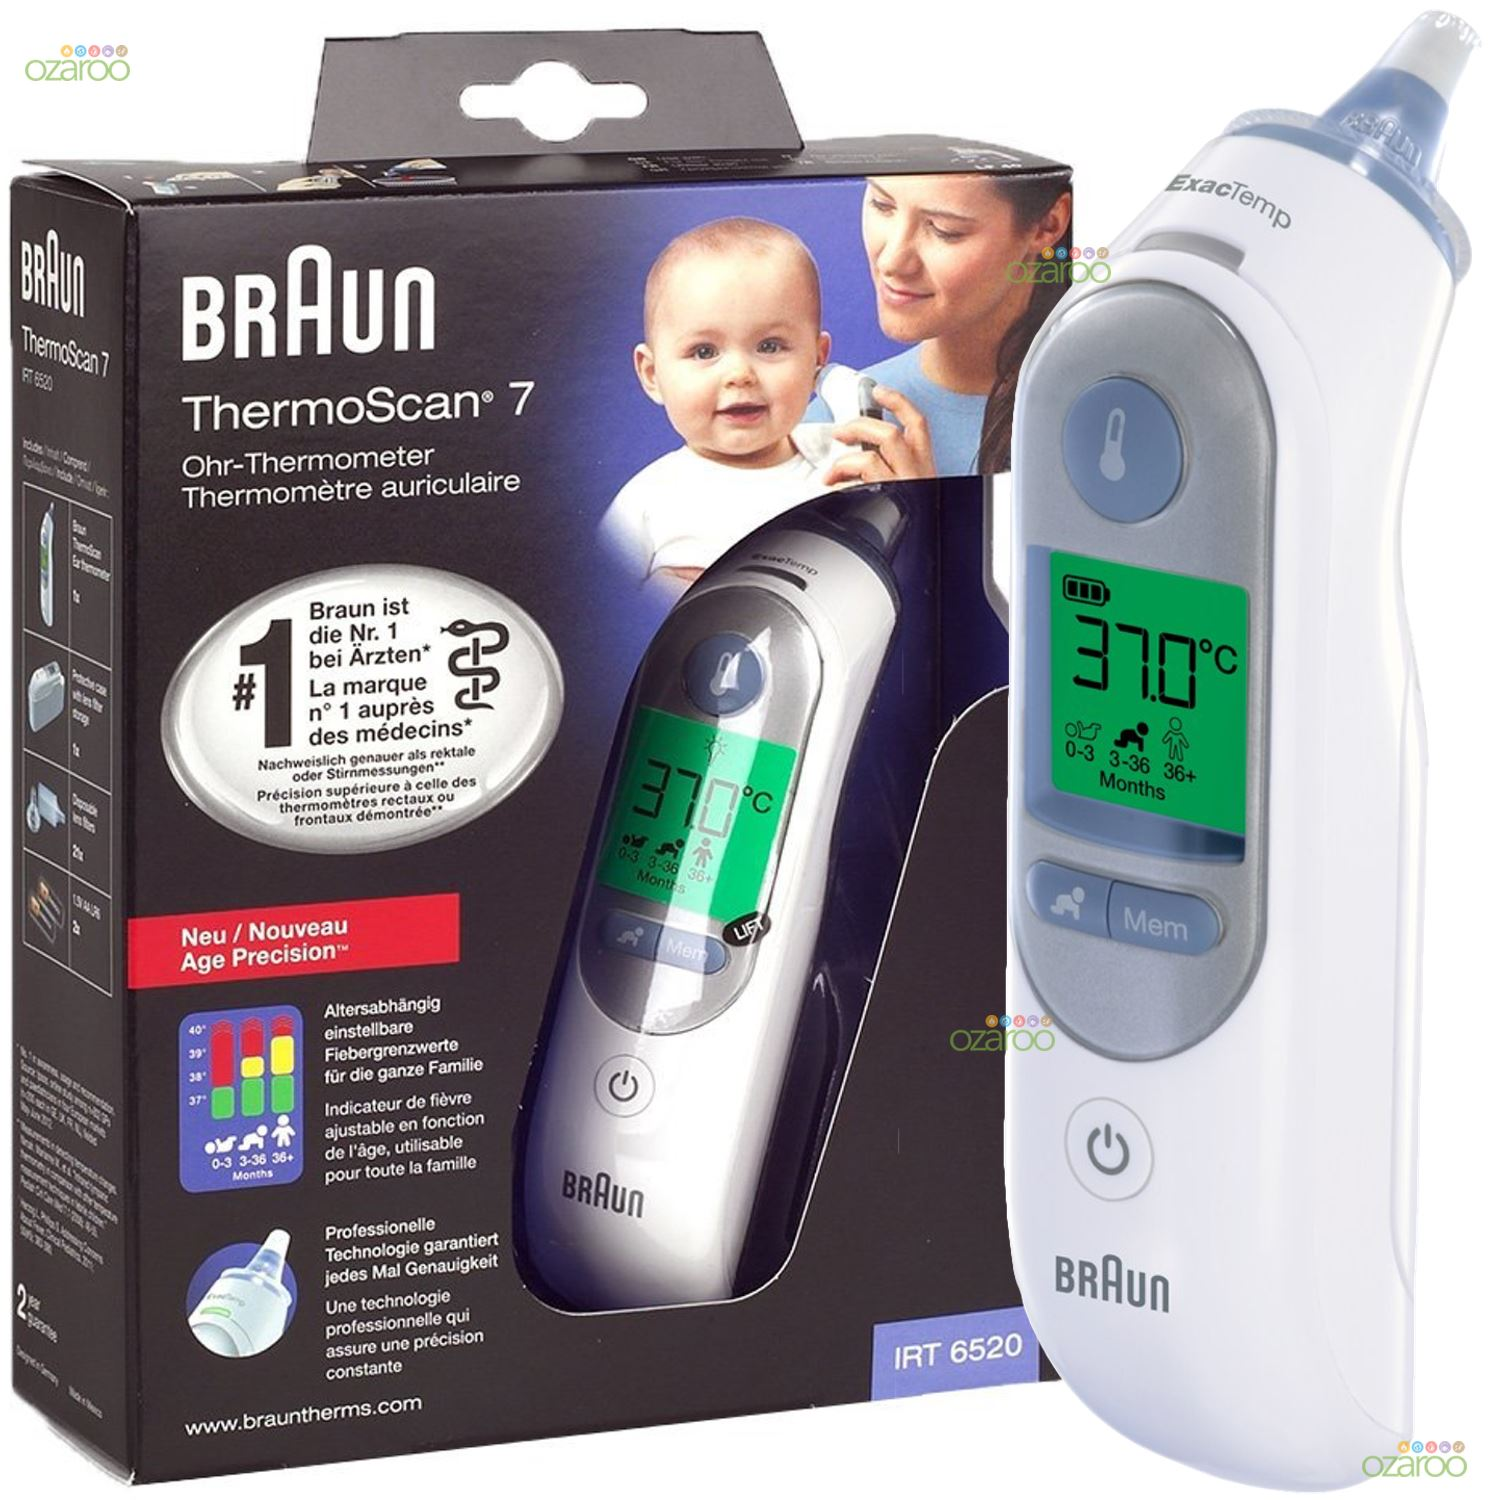 Braun ThermoScan 7 IRT6520 Baby/Adult Professional Digital Ear Thermometer